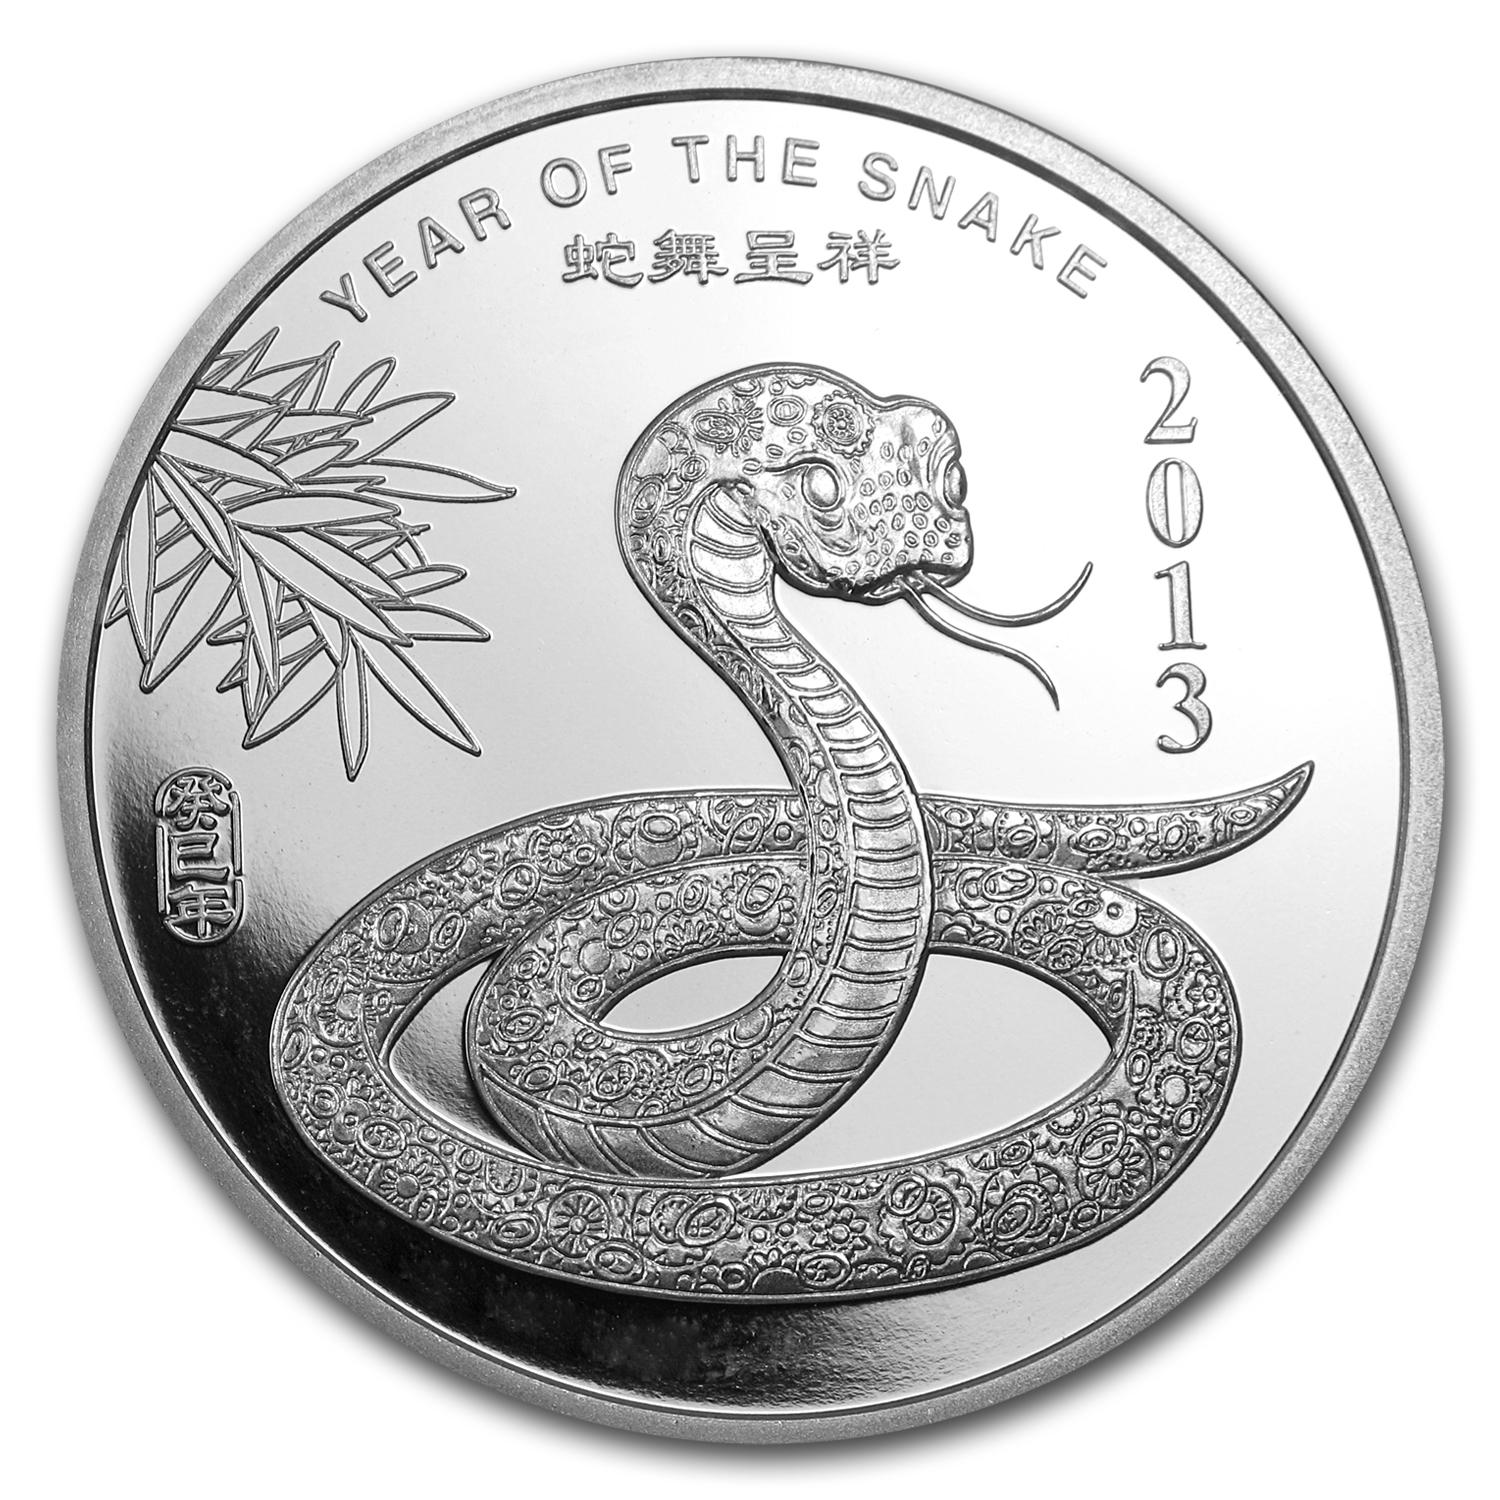 1 oz Silver Round - APMEX (2013 Year of the Snake)